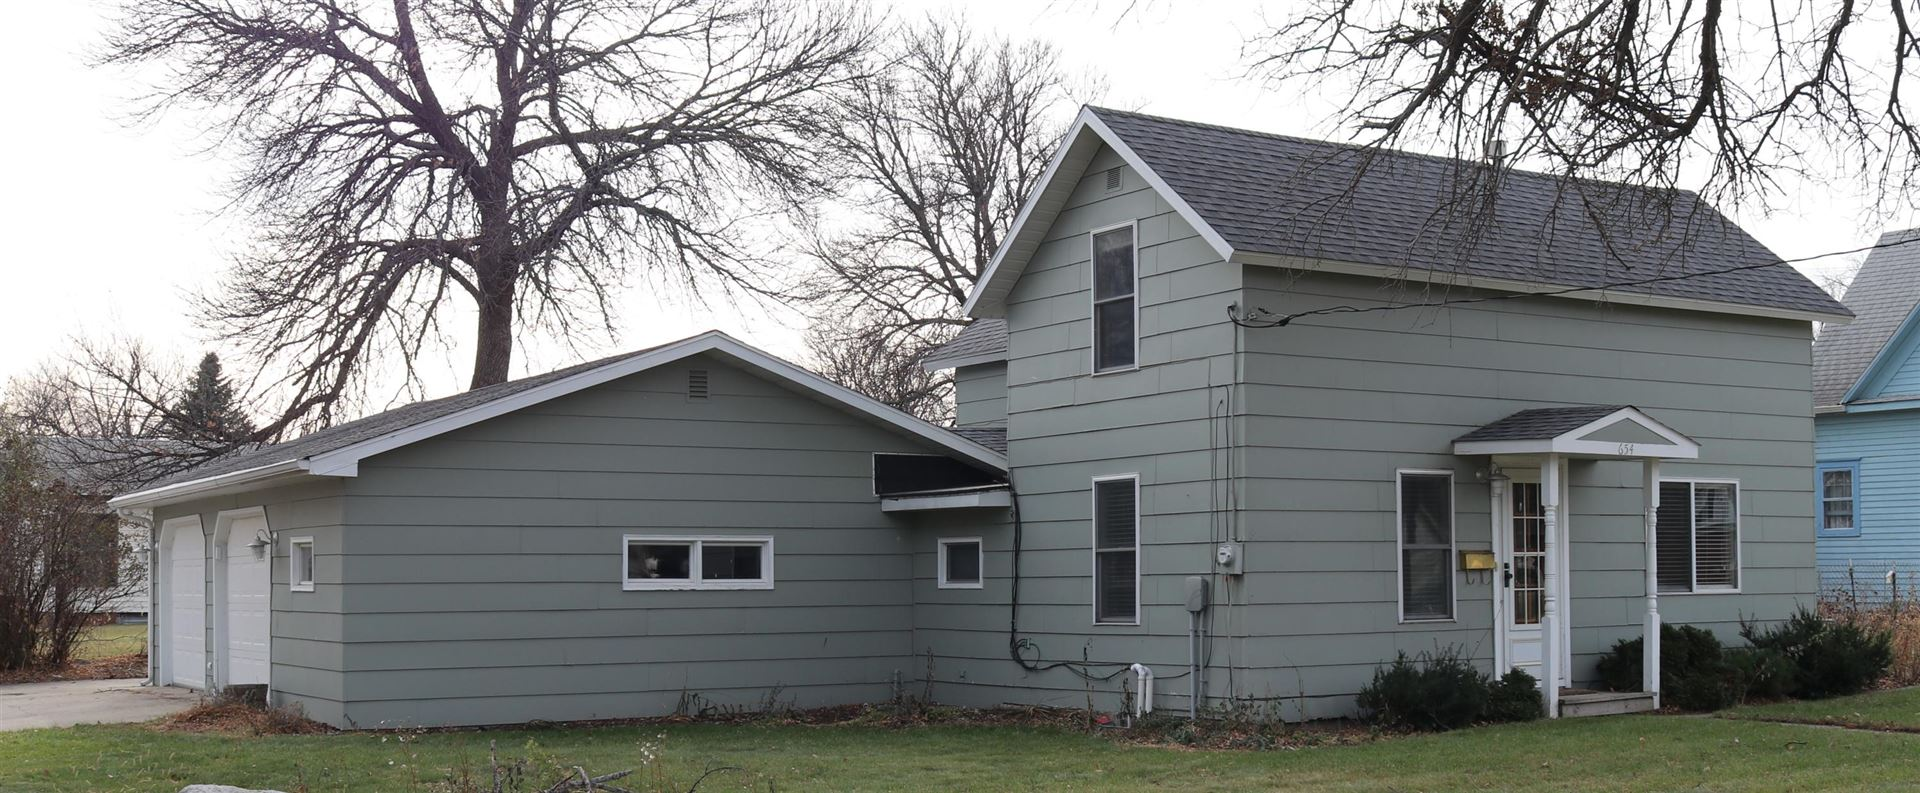 Photo for 654 4th Street NE, Valley City, ND 58072 (MLS # 20-632)